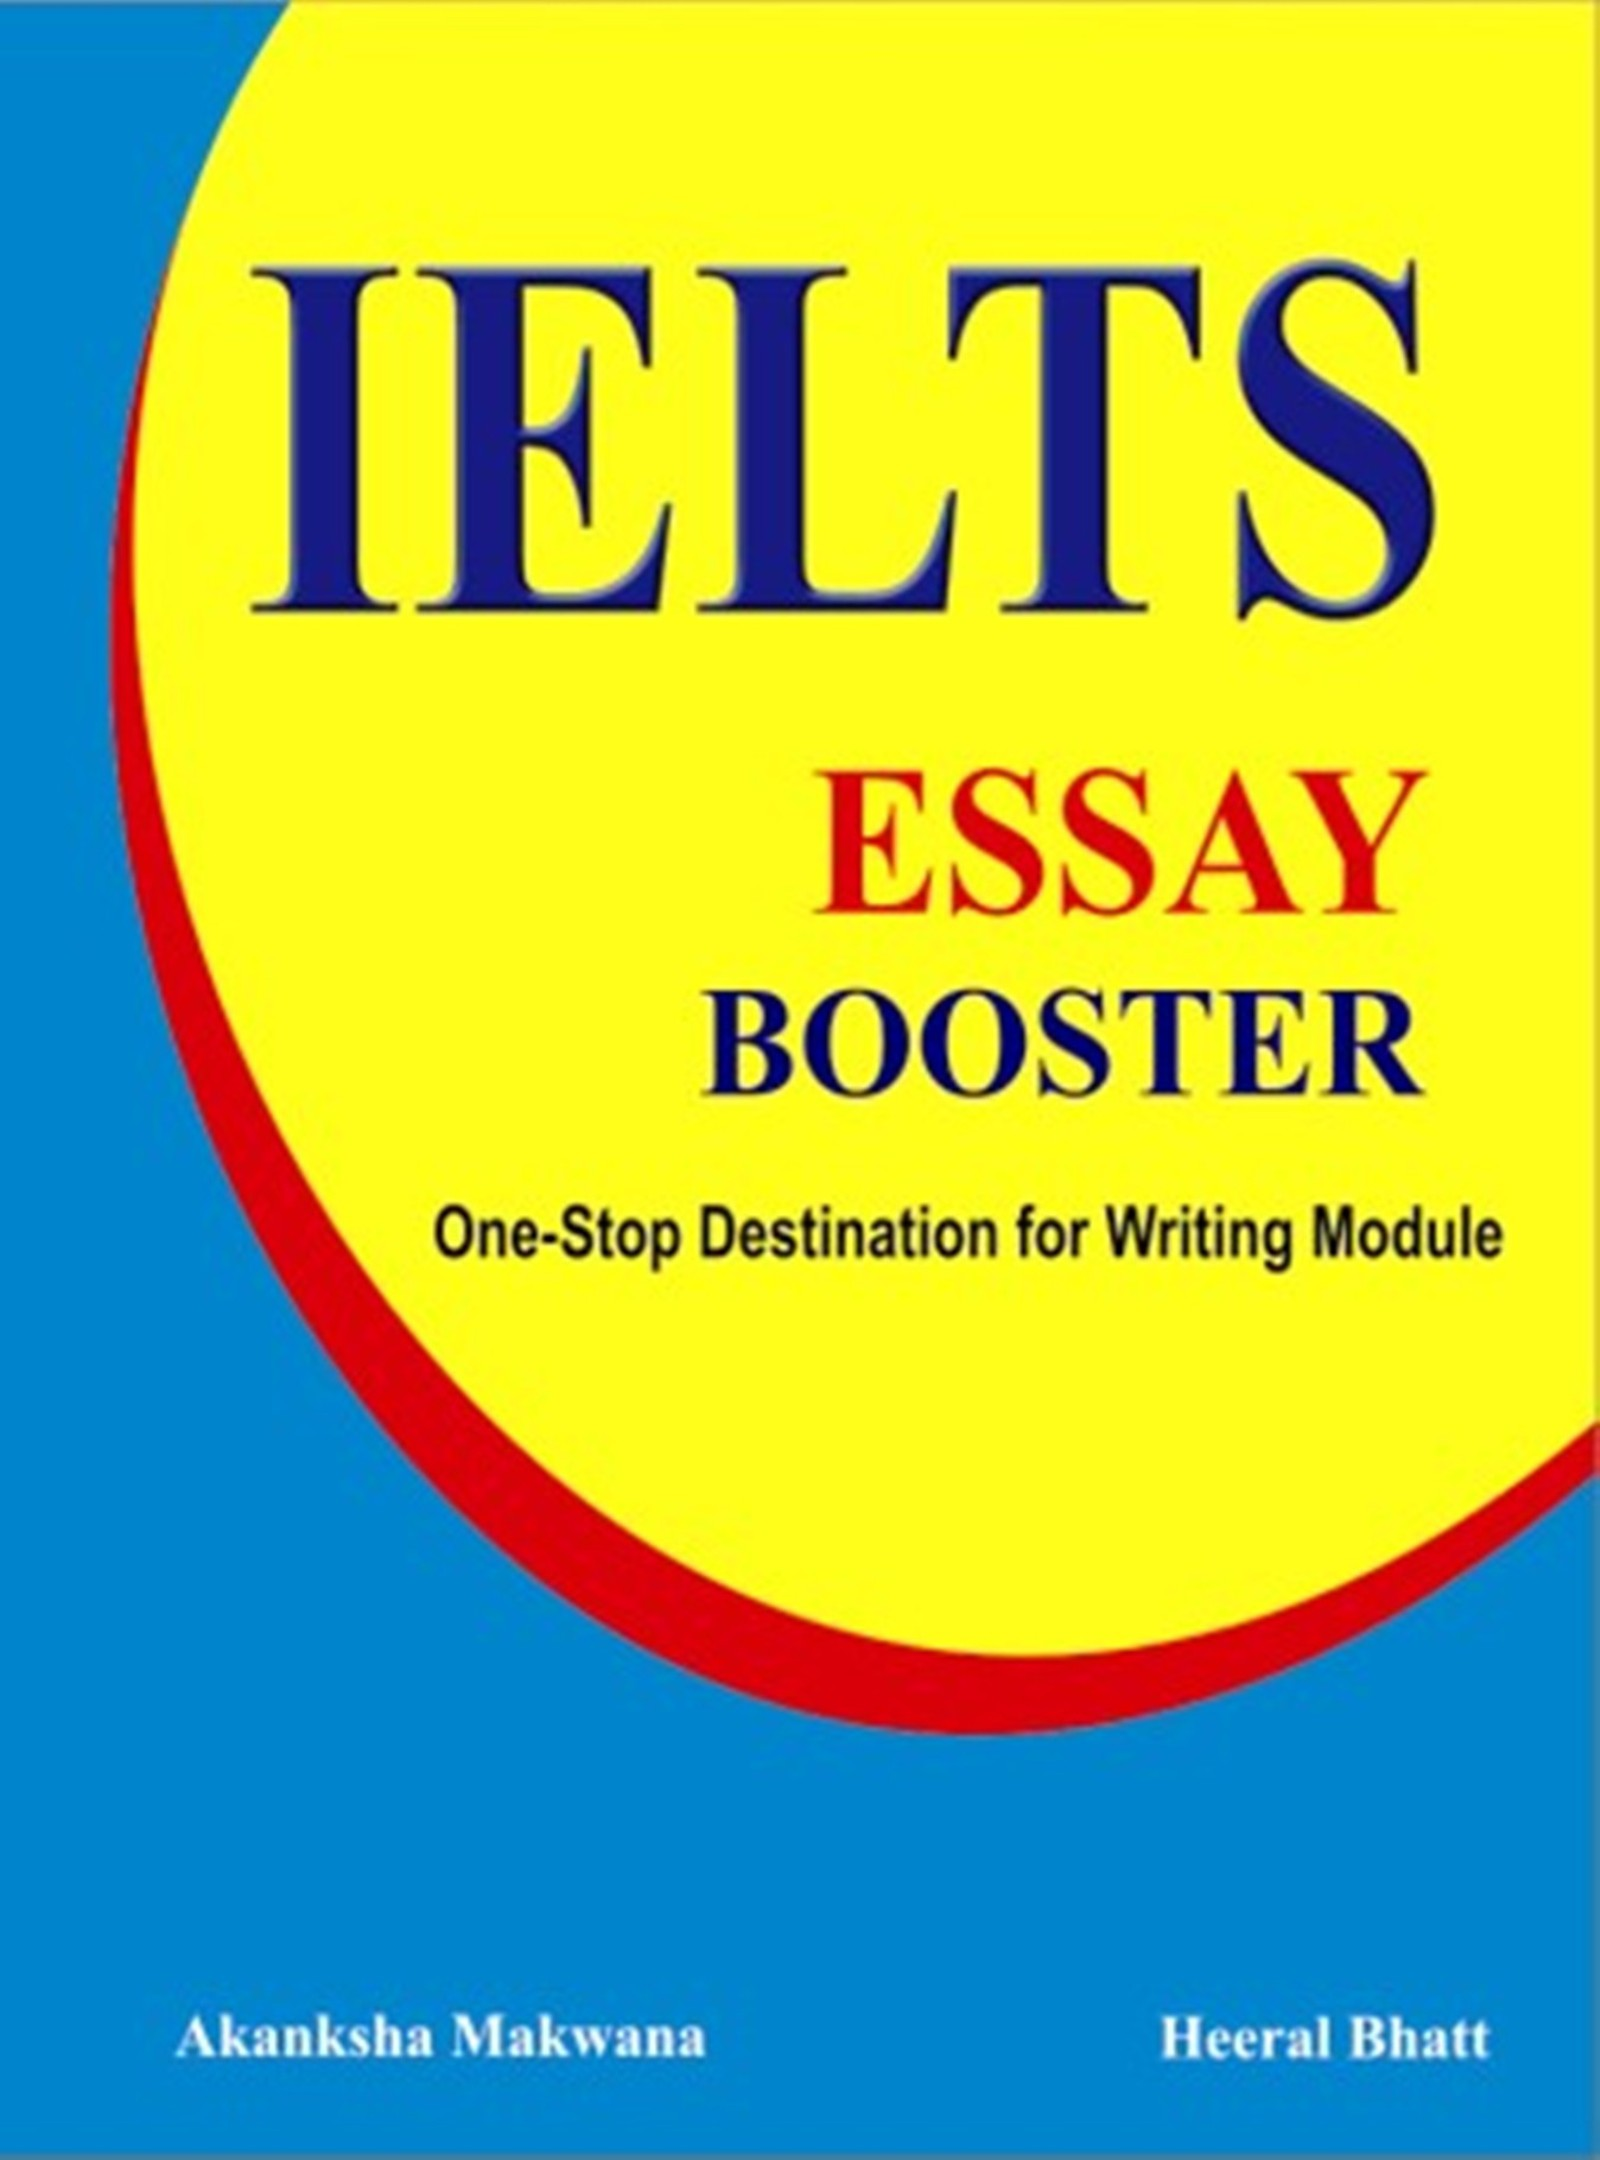 ielts essay booster one stop destination for the readers